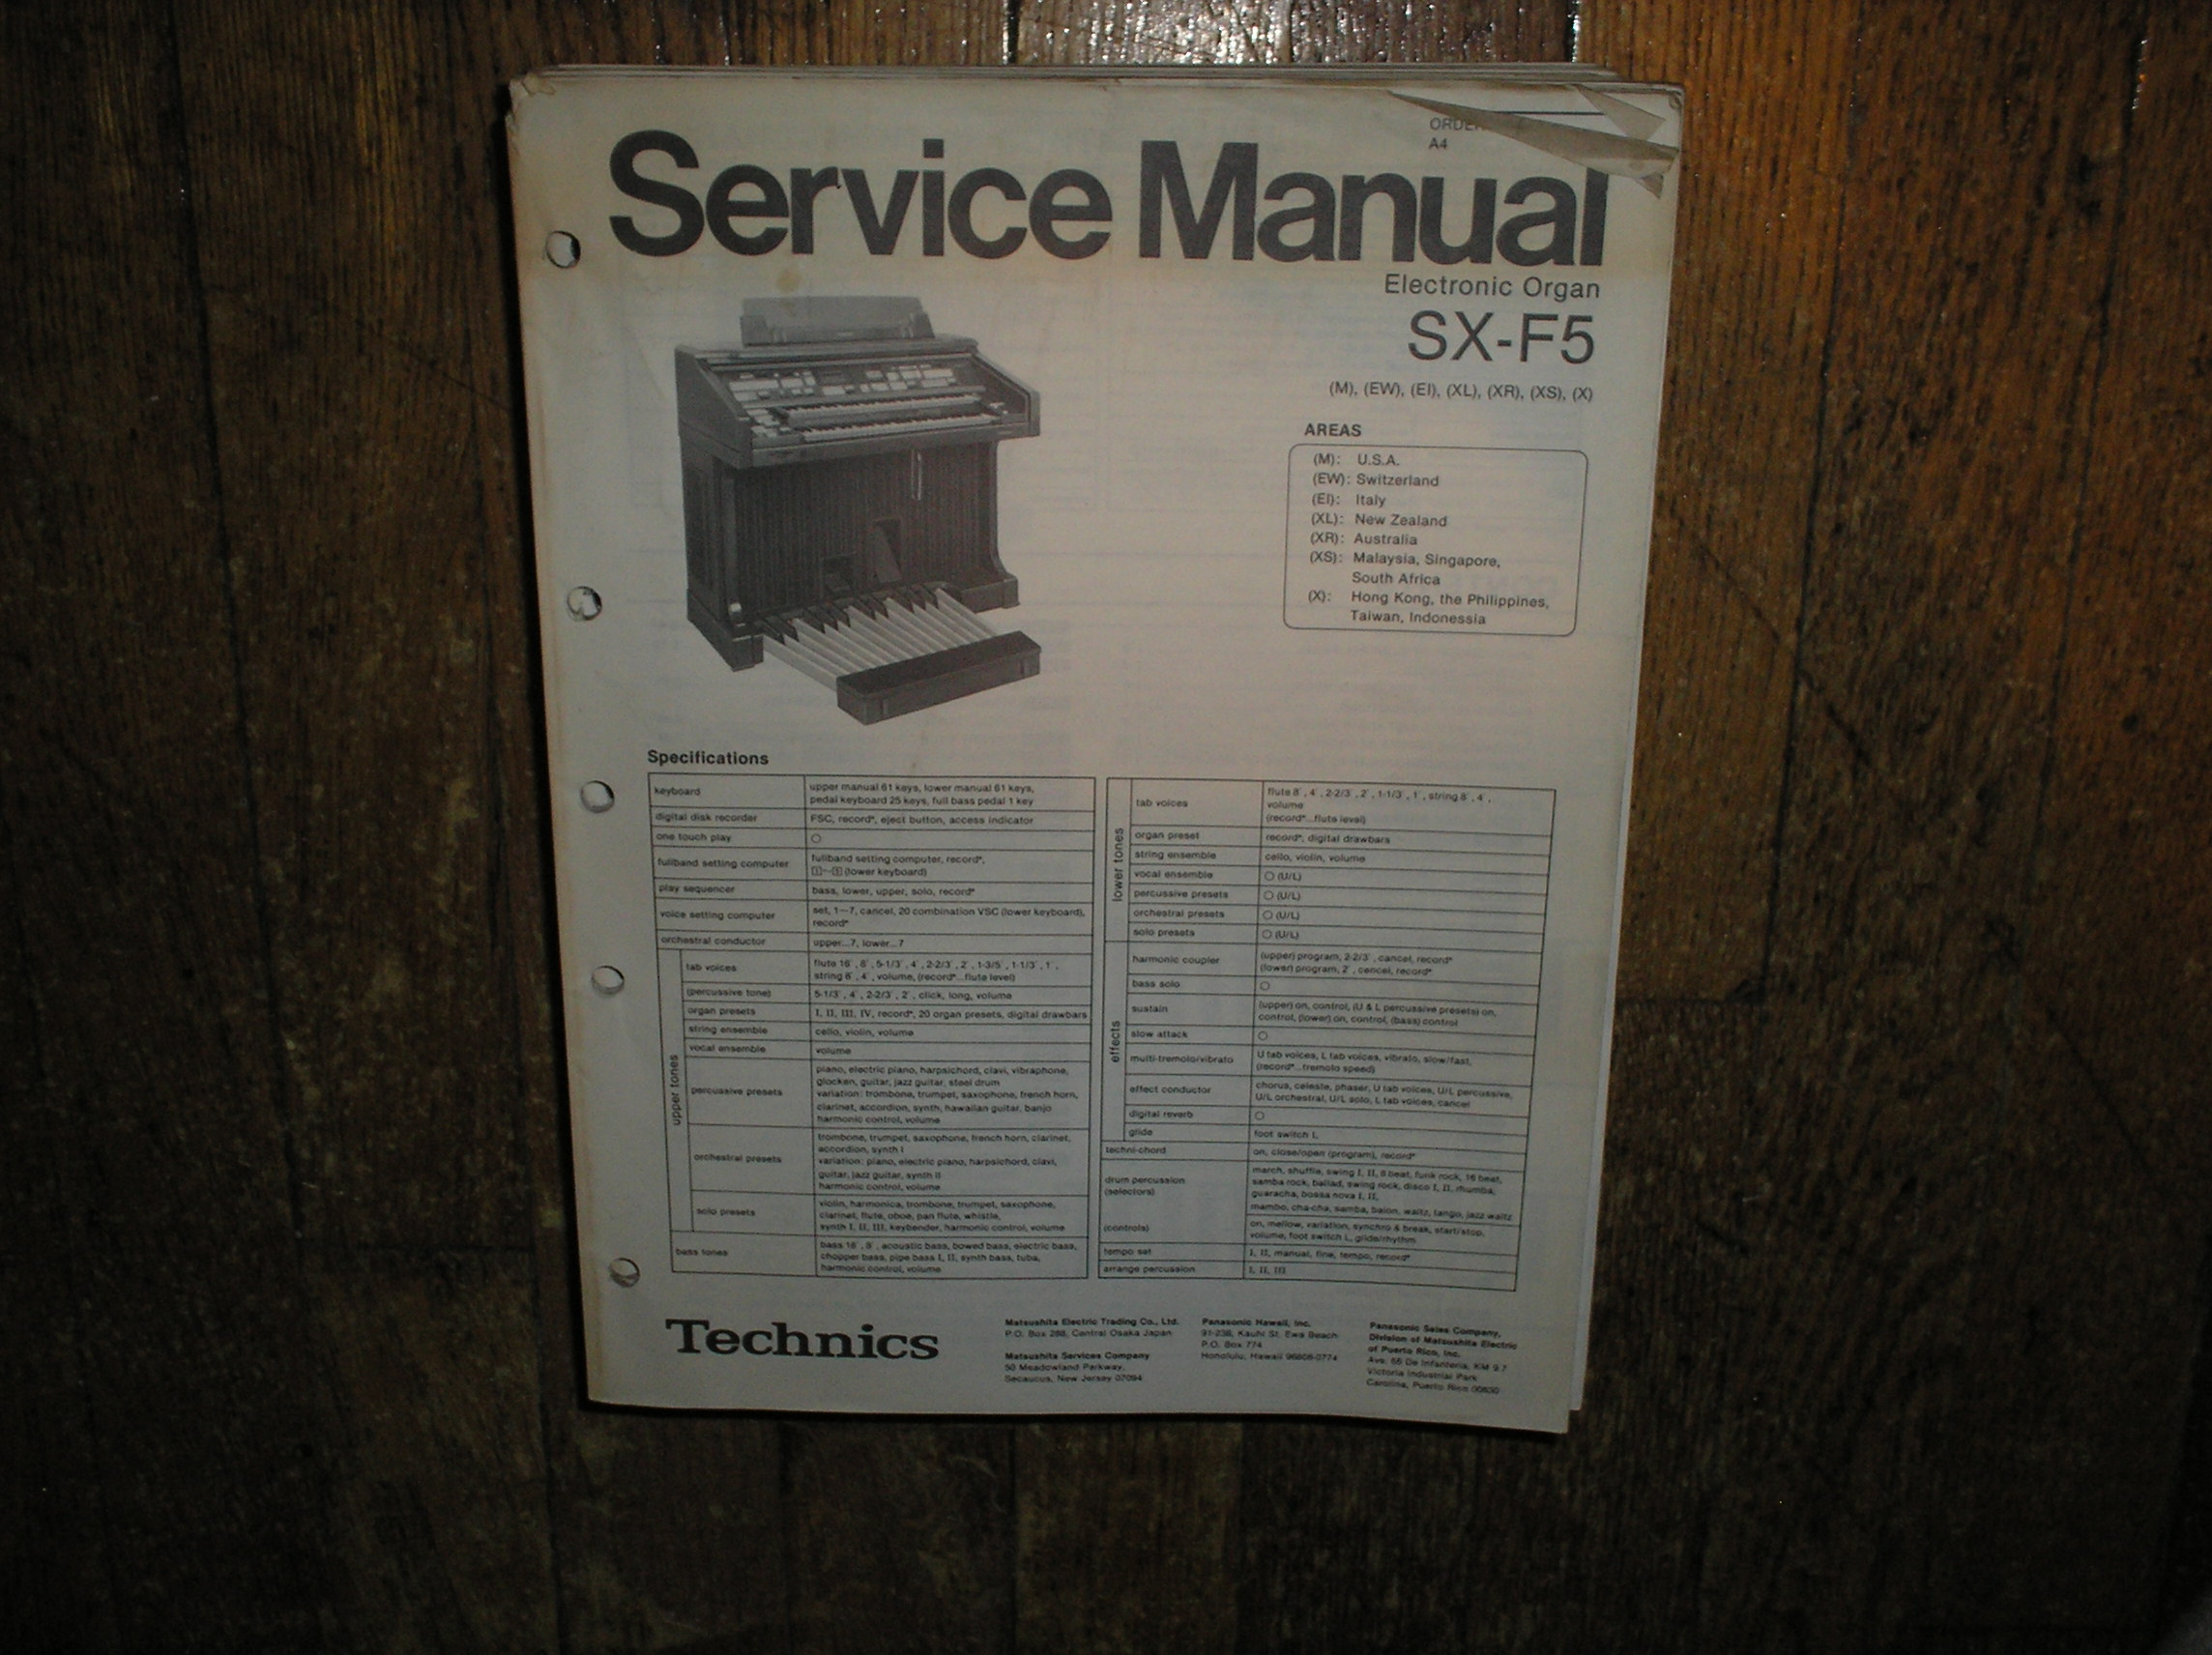 SX-F5 Electric Organ Service Manual